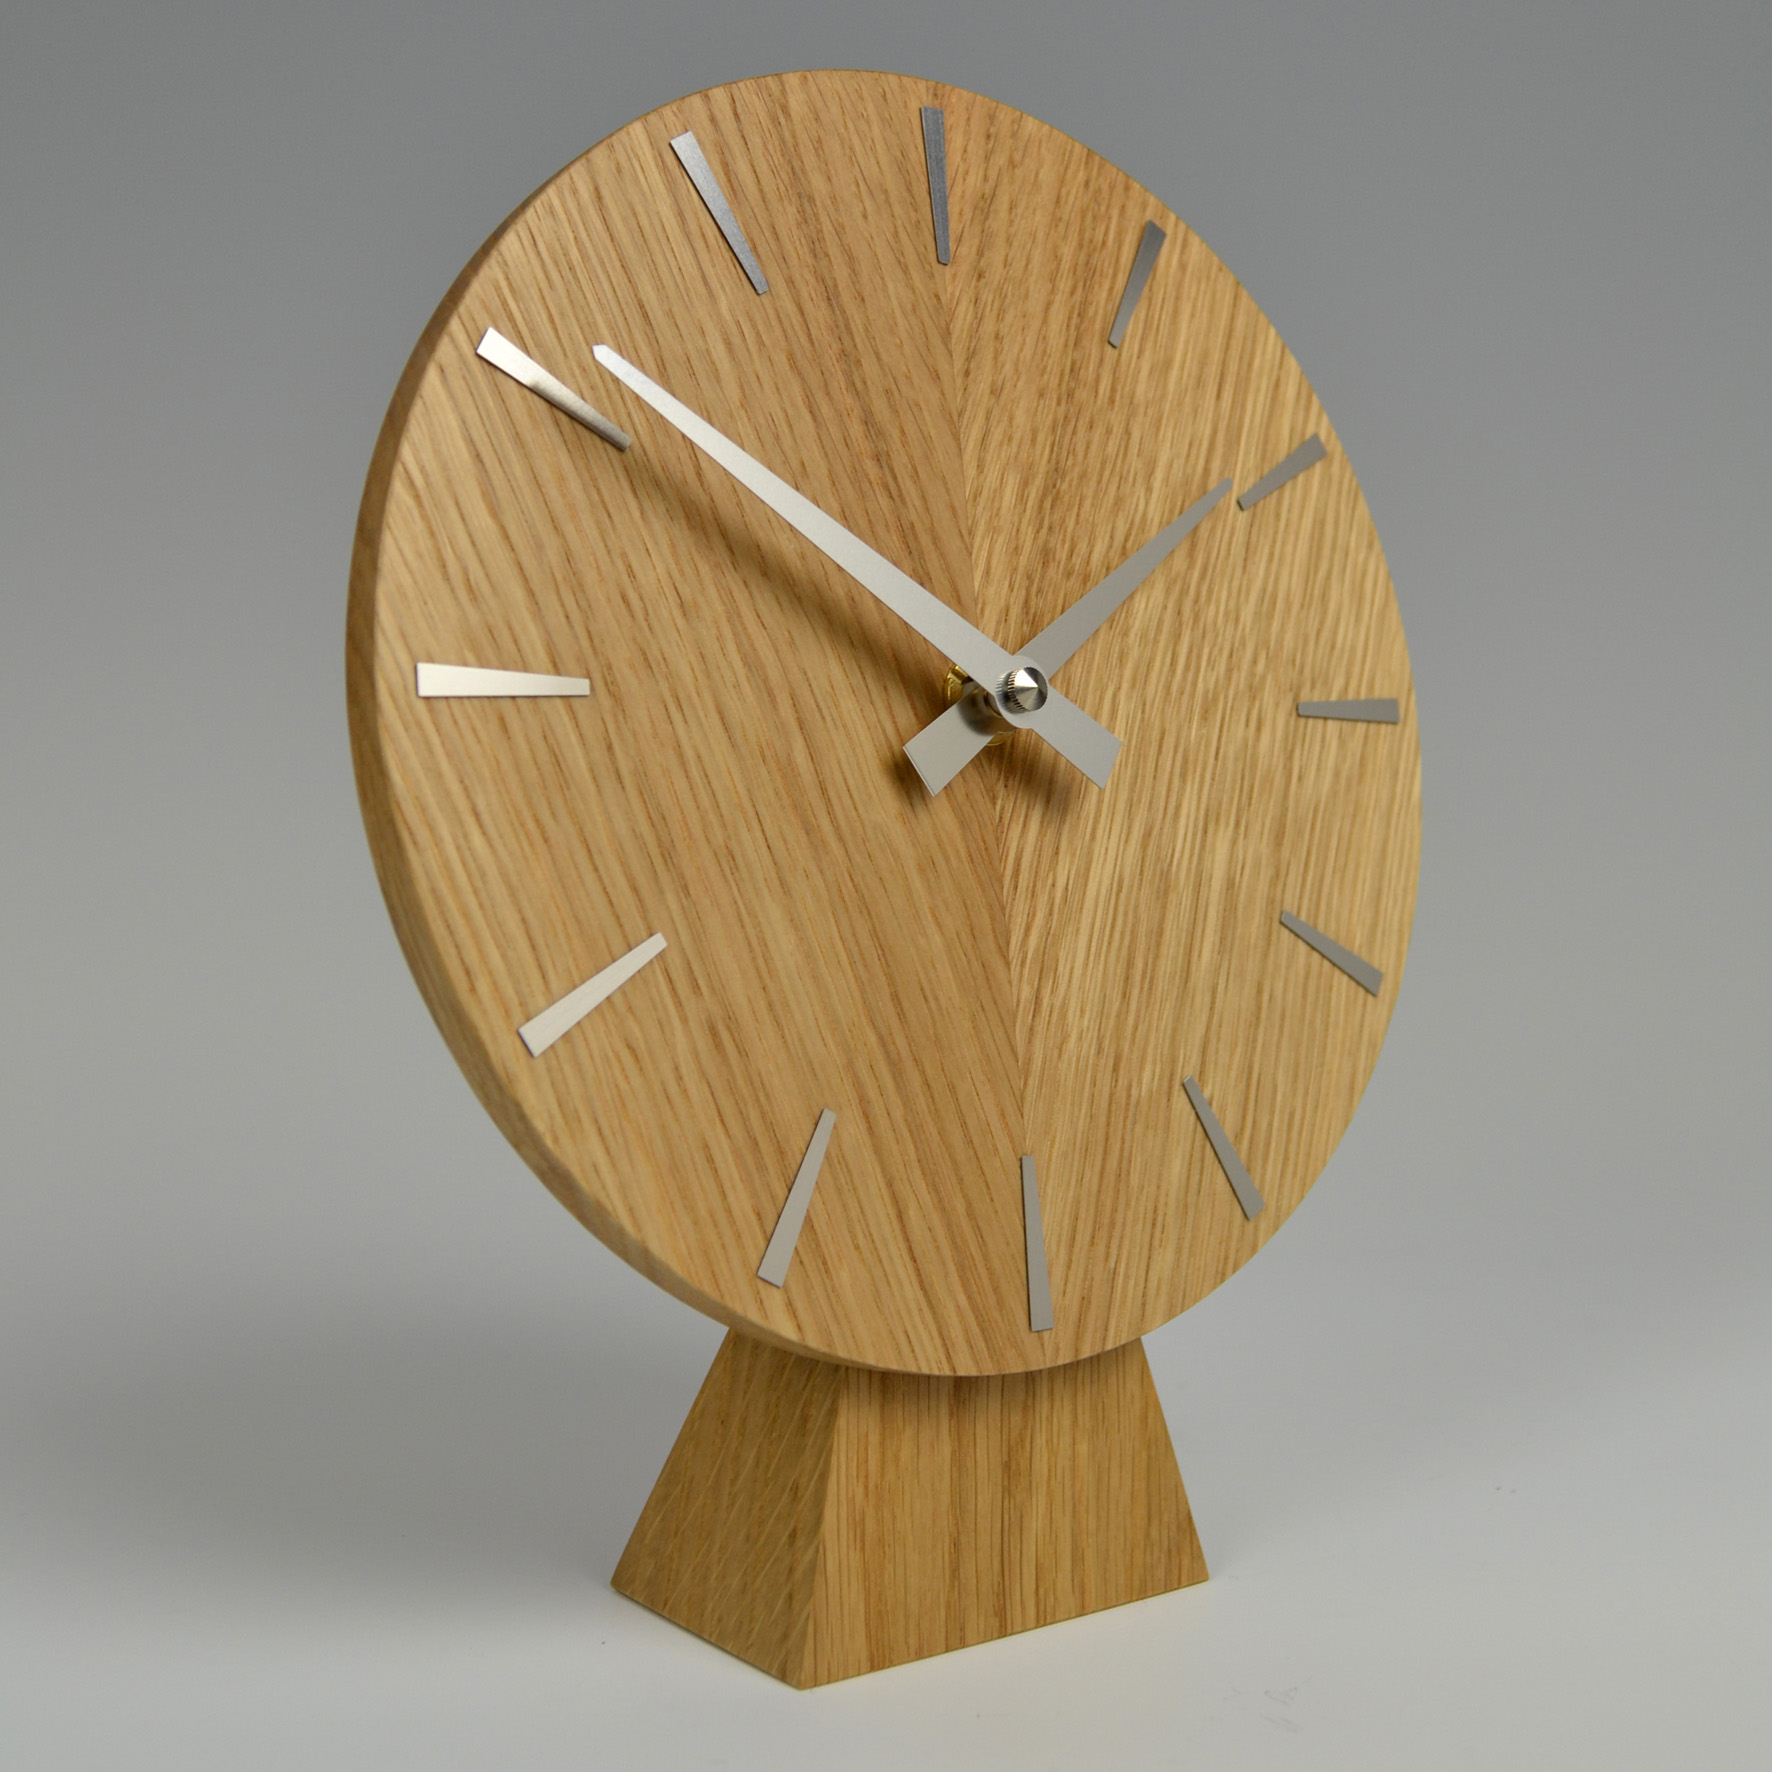 Inhouse clocks | oak wood clock